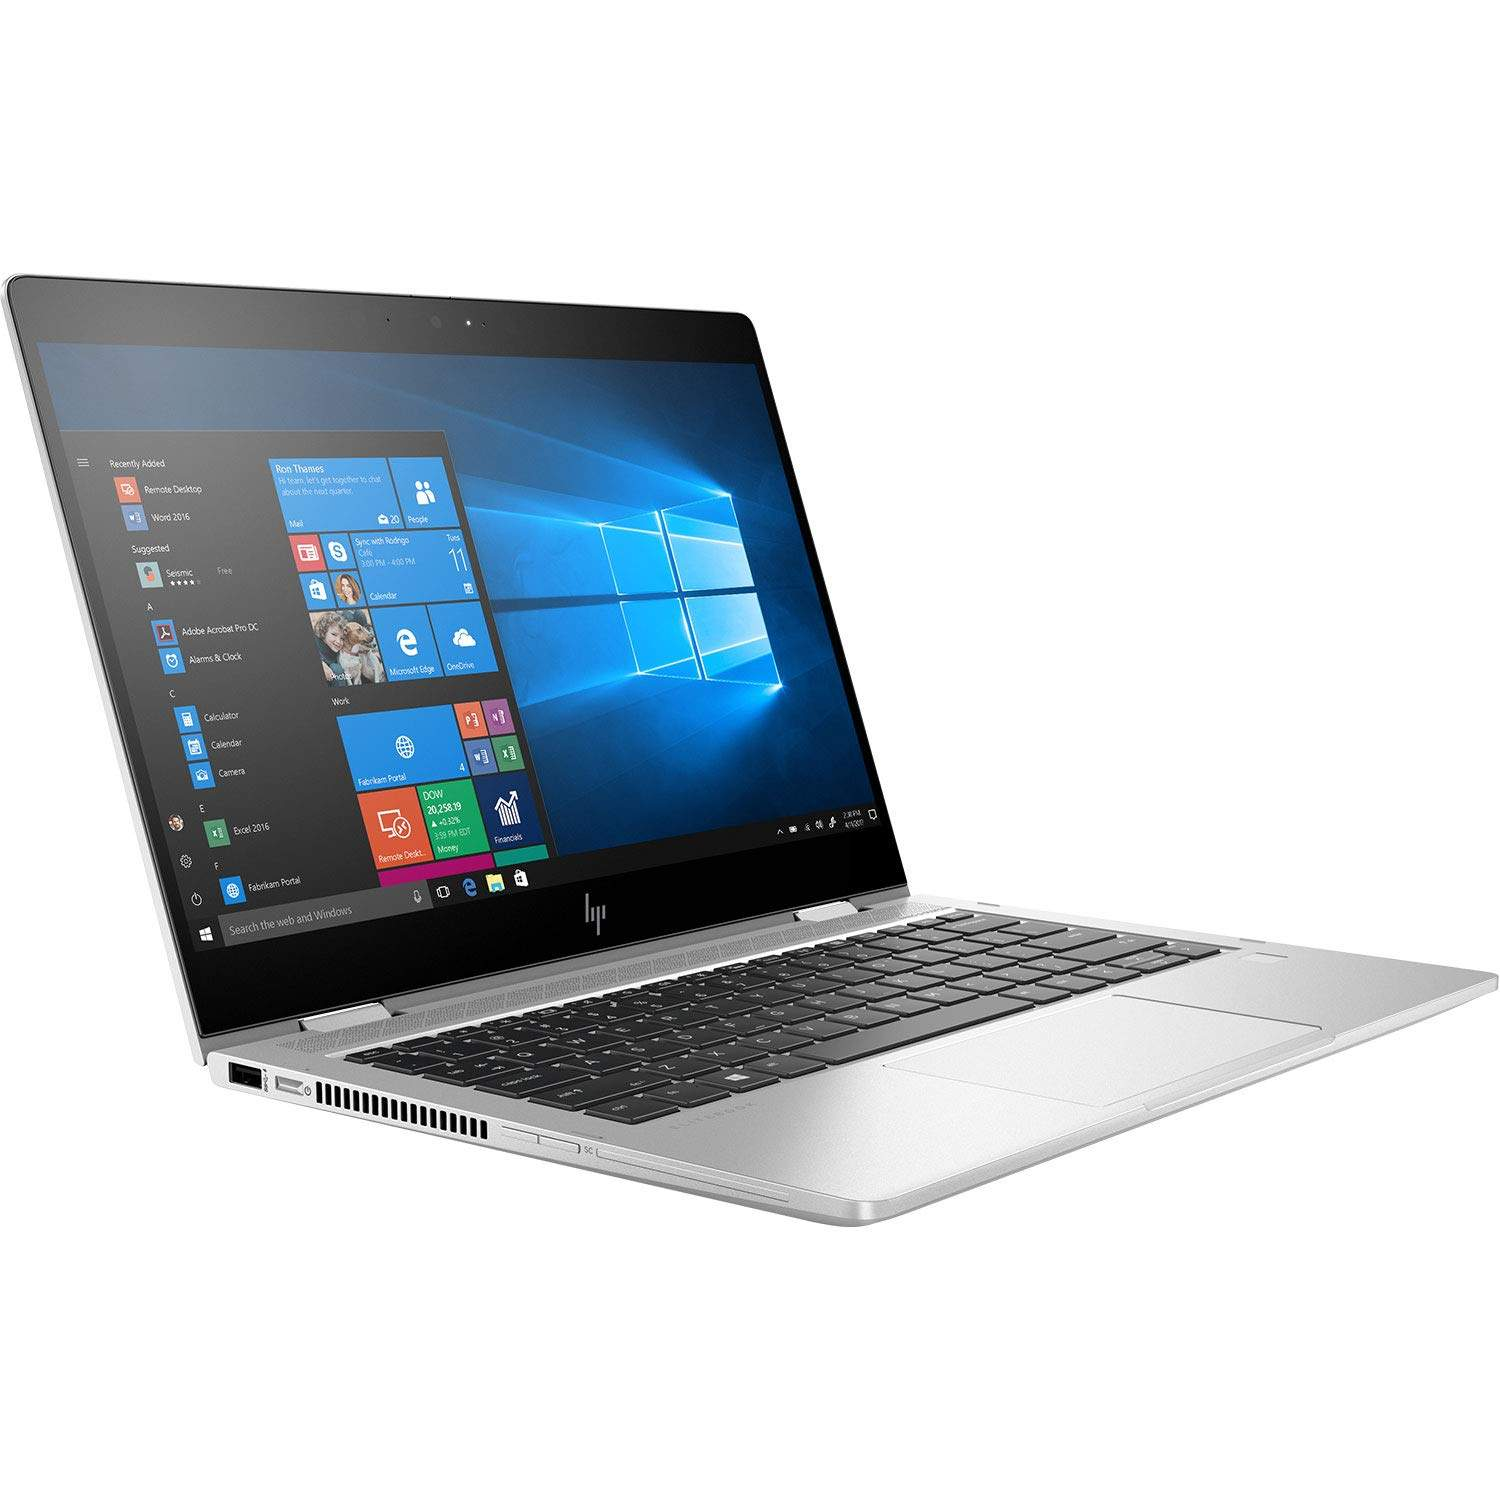 HP Elitebook X360 830 G6 13.3- Laptop (8th Gen Core I7-8550U/8GB/512GB SSD/Windows 10 Pro/Intel UHD620 Graphics), Silver [B088266T5T]